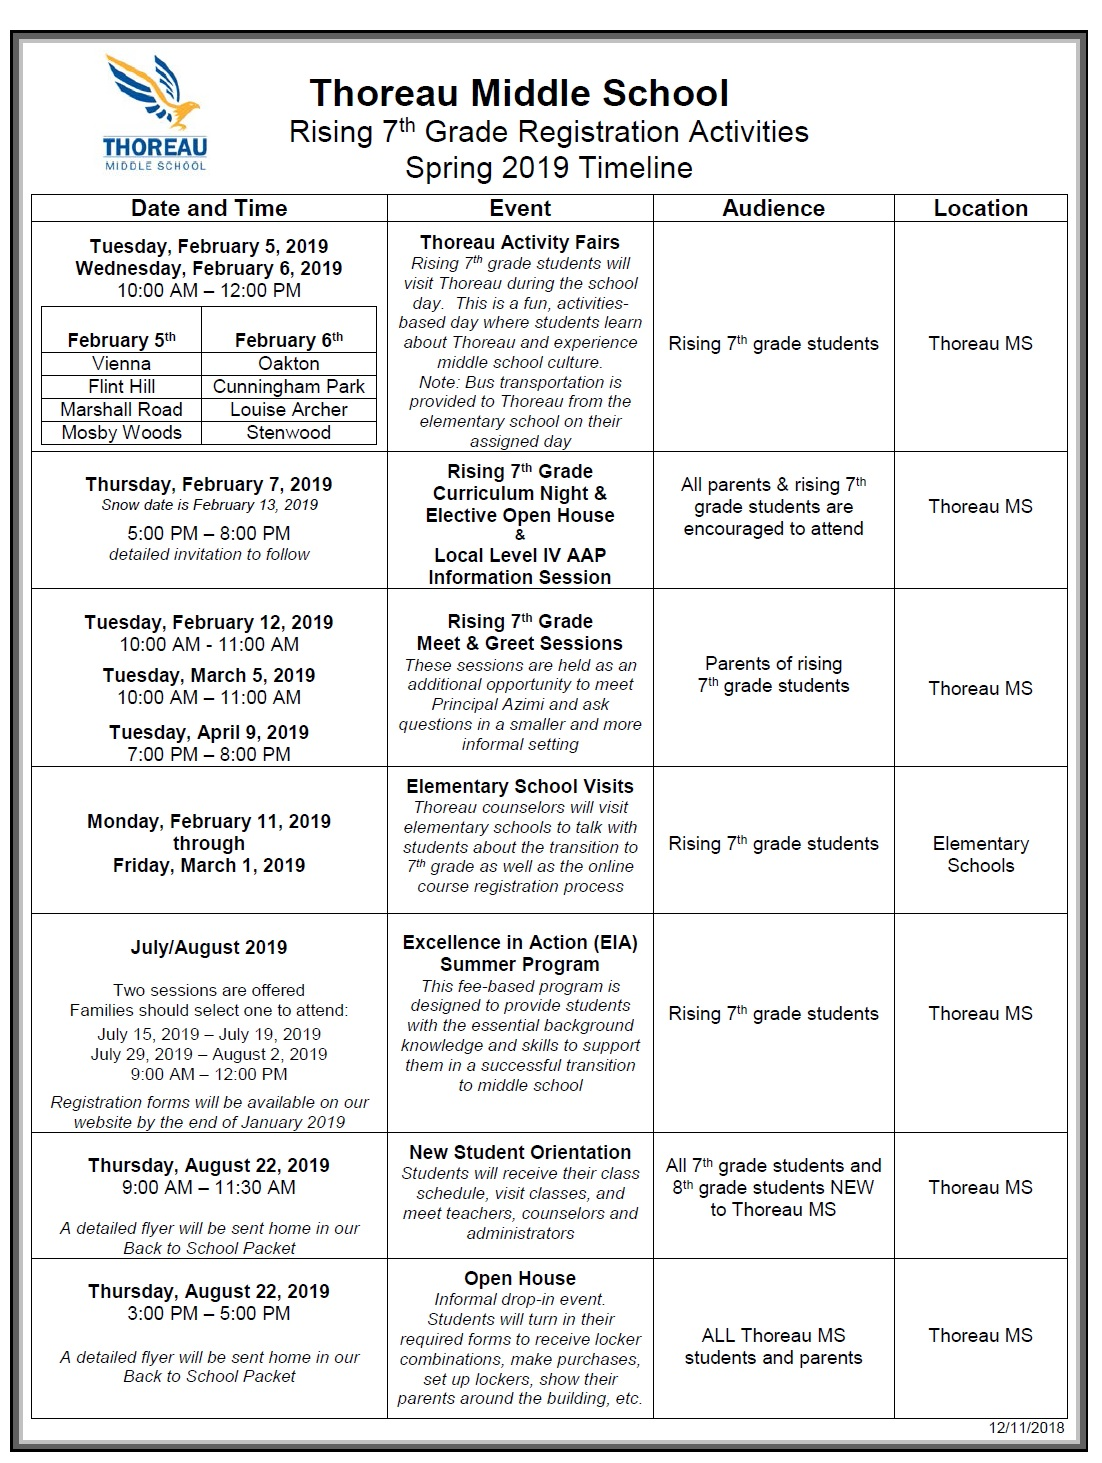 Fcps Calendar 2019.Rising 7th Grade Registration Activities Spring 2019 Timeline